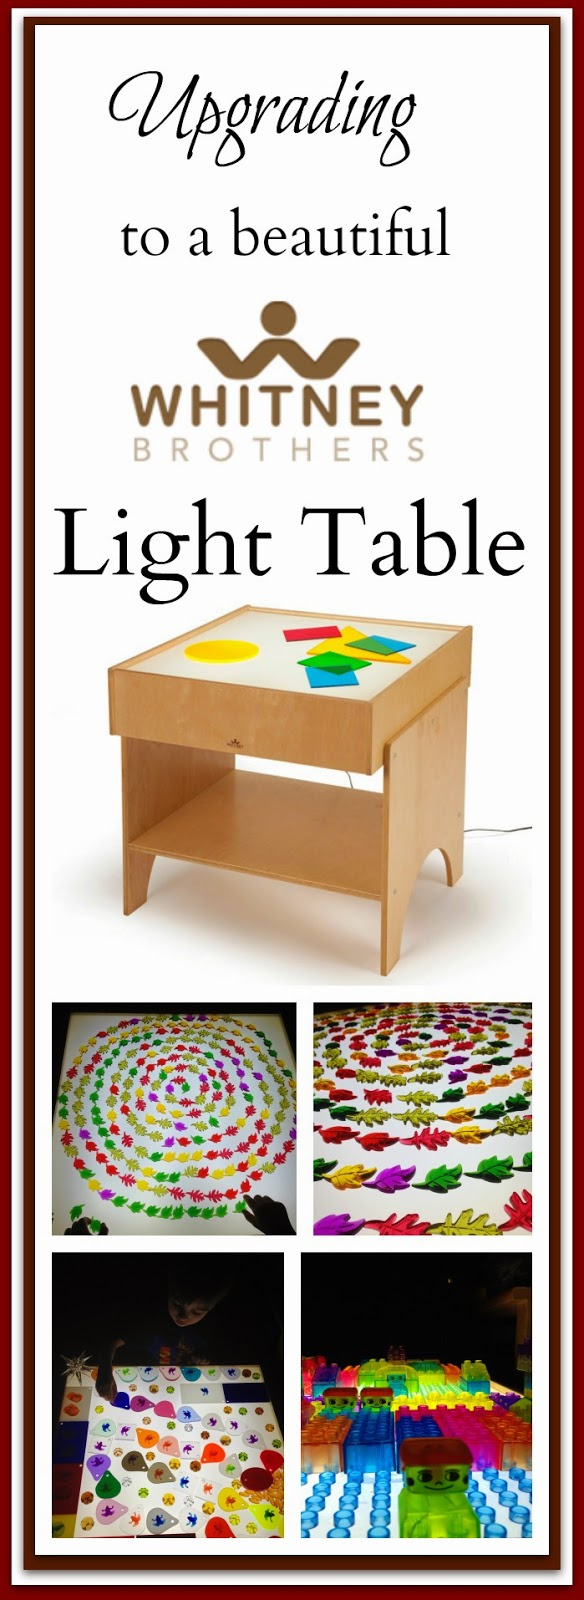 light table by Whitney Brothers